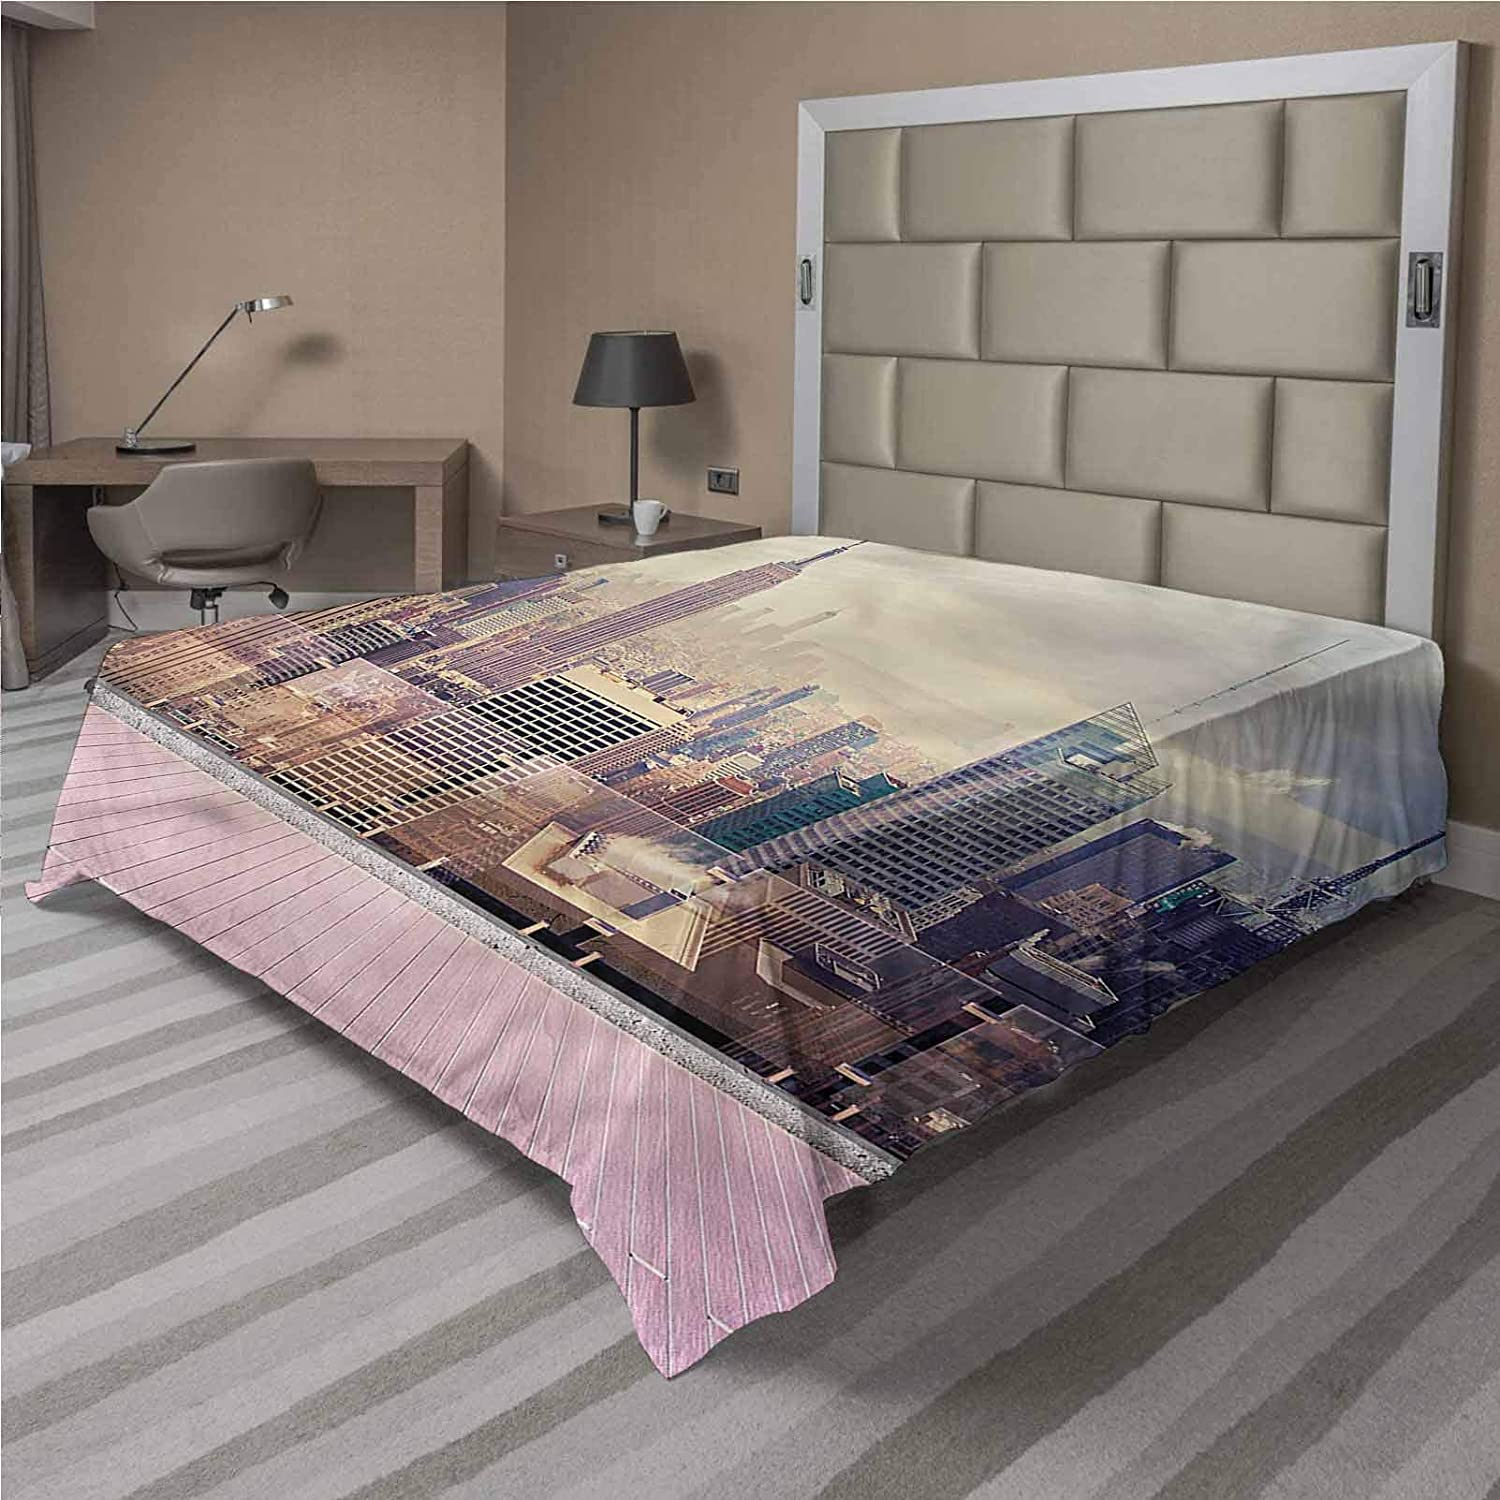 Safety and trust LCGGDB Modern Flat Sheet Only New Brushed View Roof Fashionable USA Mic York